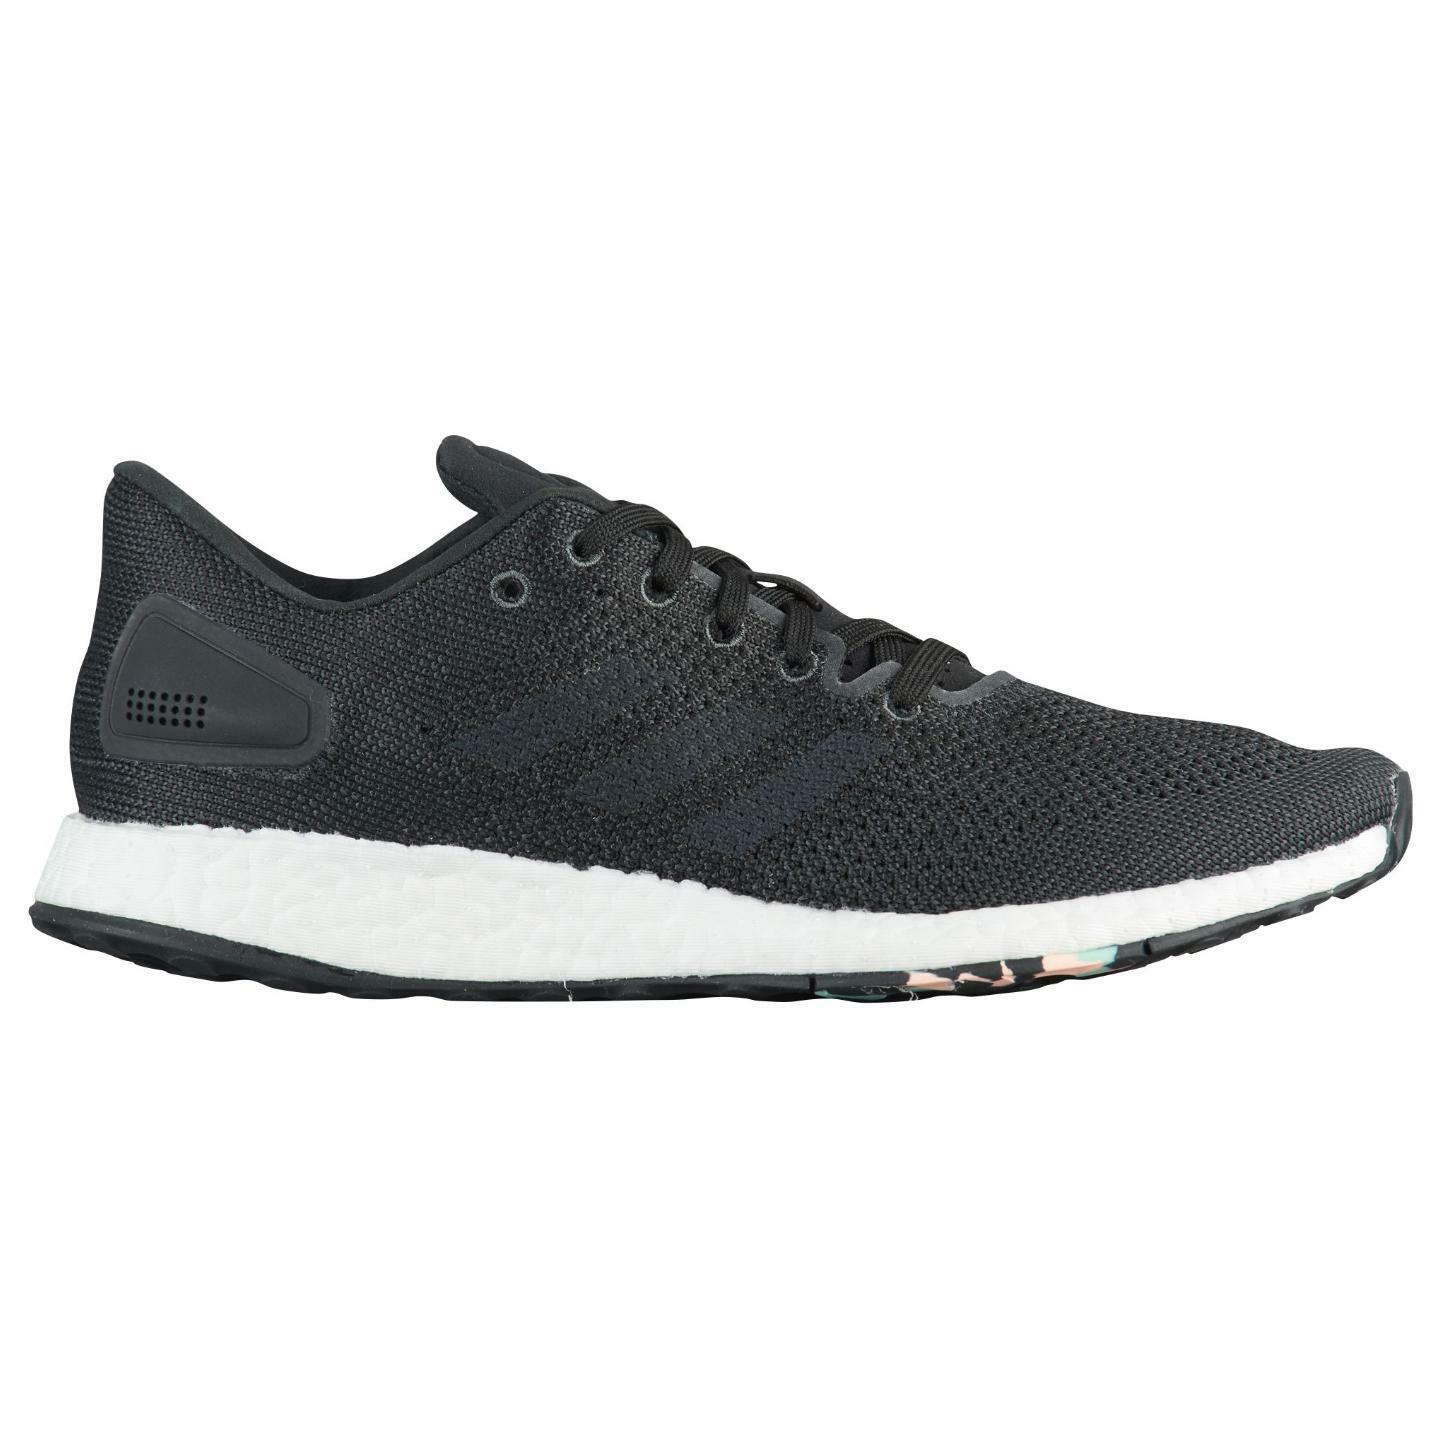 New adidas womens PureBOOST DPR running athletic shoes sneakers Black  160